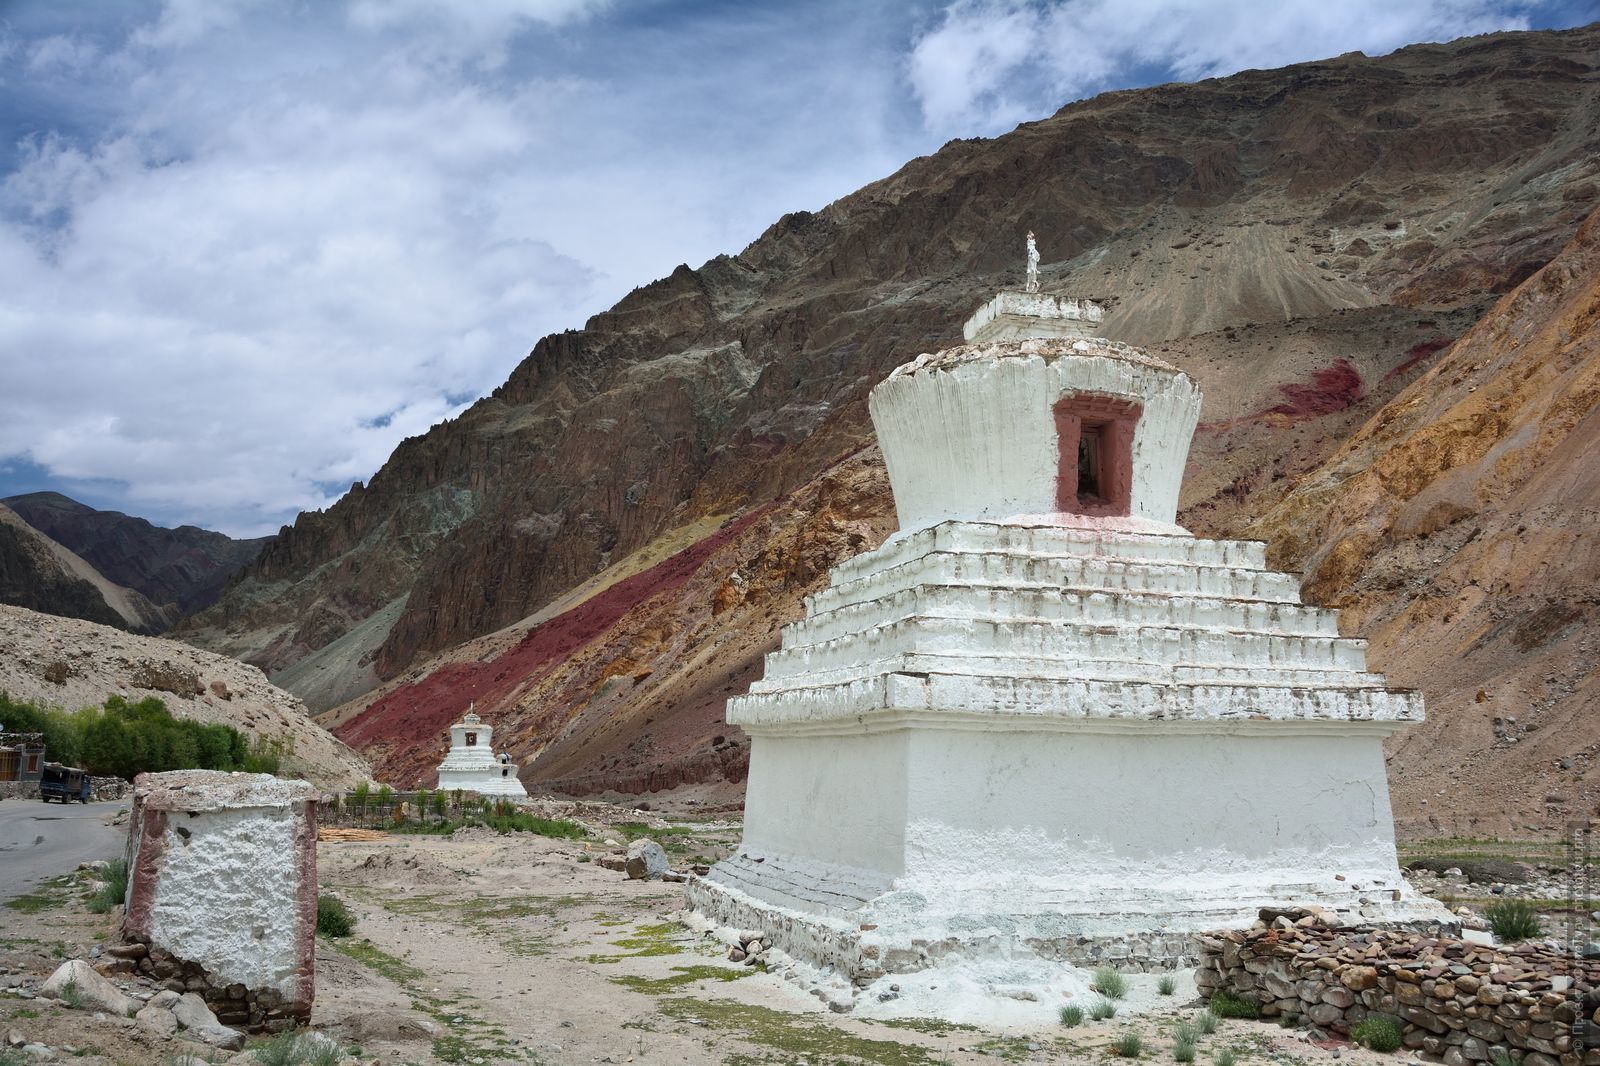 The village of Rumce. Tour for artists in Tibet: Watercolor-1: Watercolor painting in Ladakh with Pavel Pugachev, 04.08. - 16.08. 2018